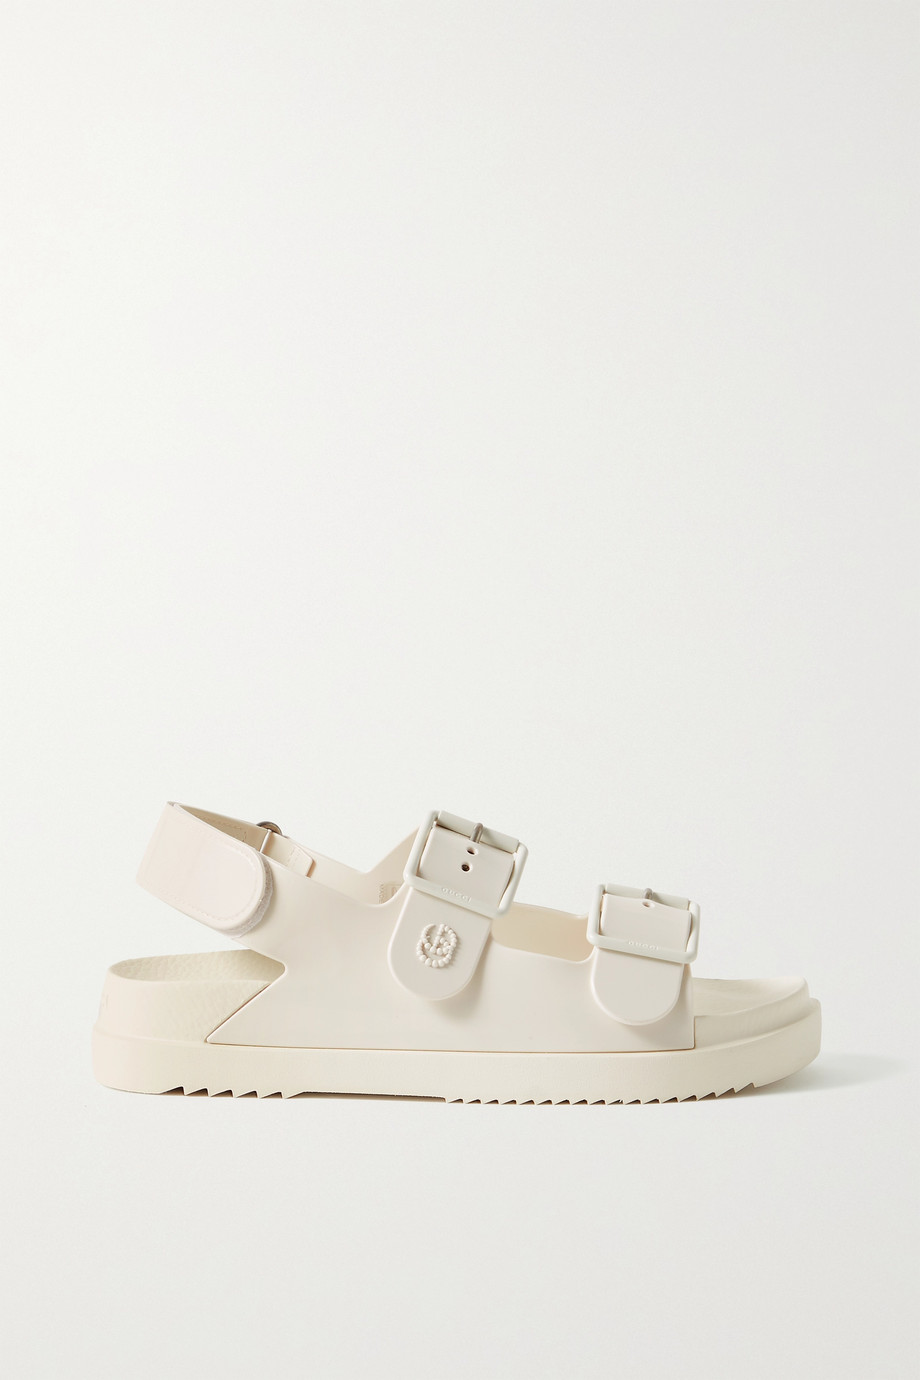 Gucci Isla buckled rubber sandals